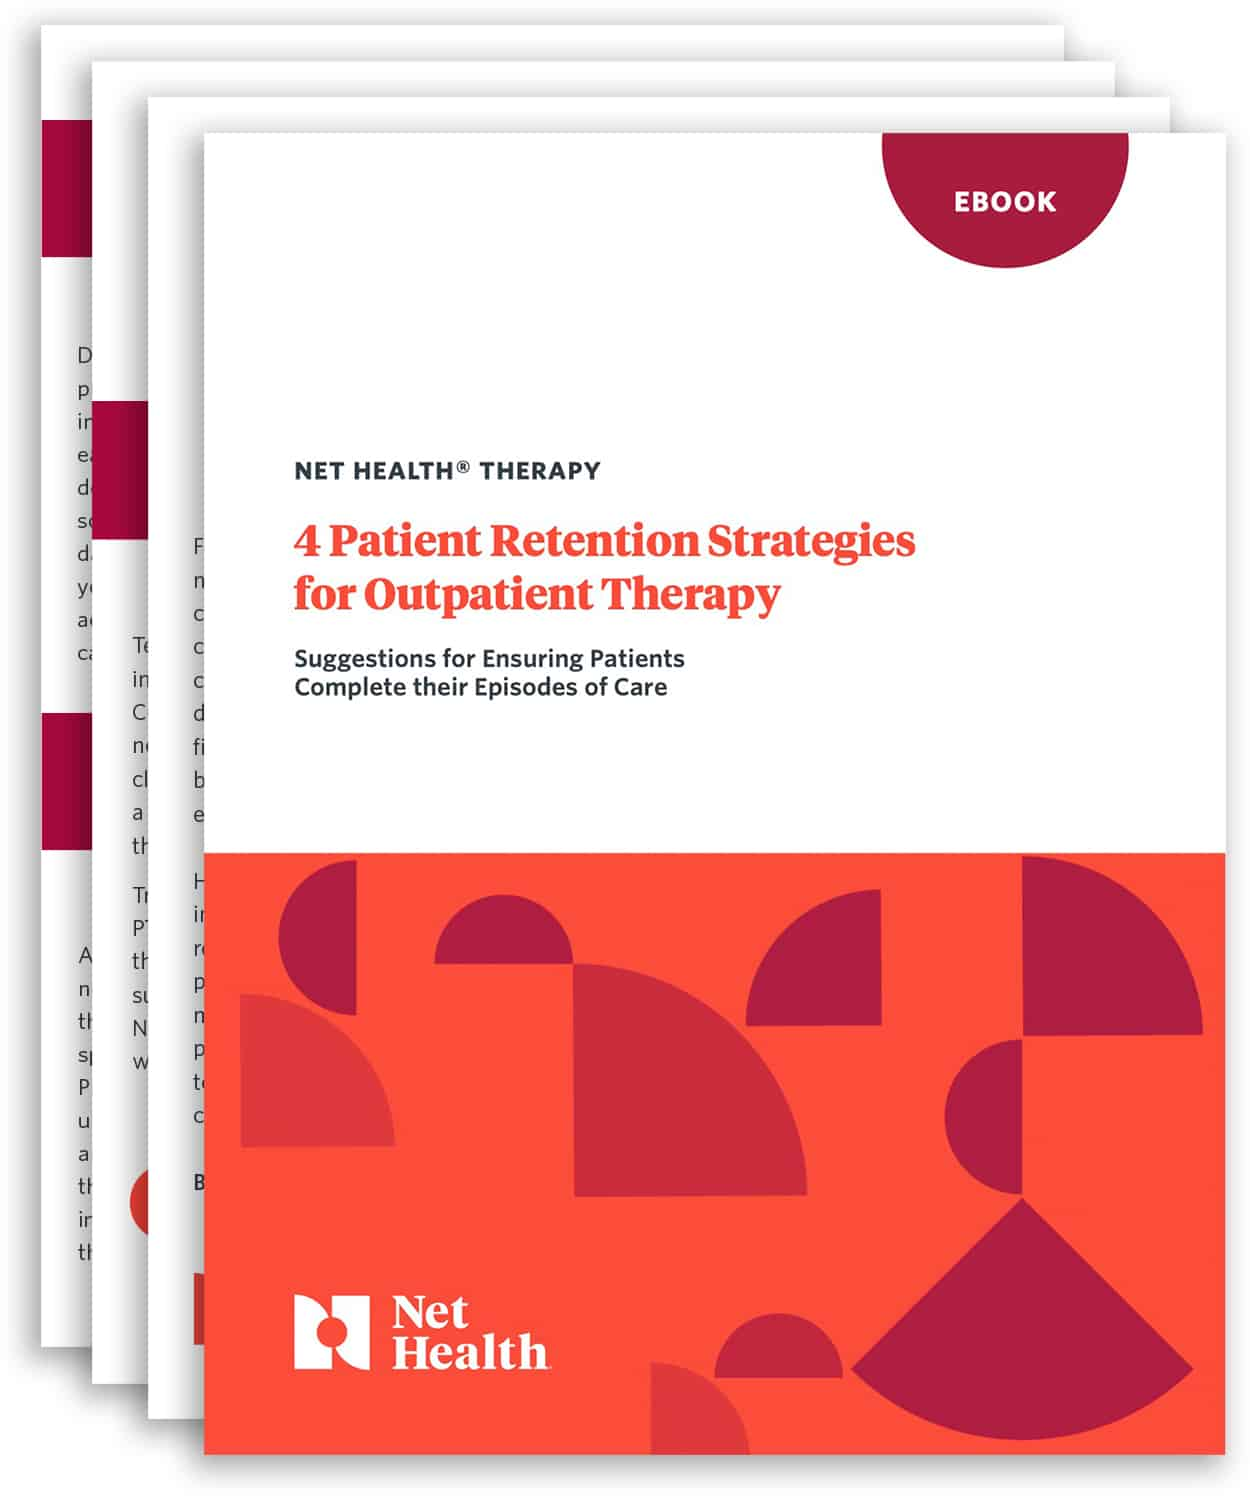 4 Patient Retention Strategies for Outpatient Therapy